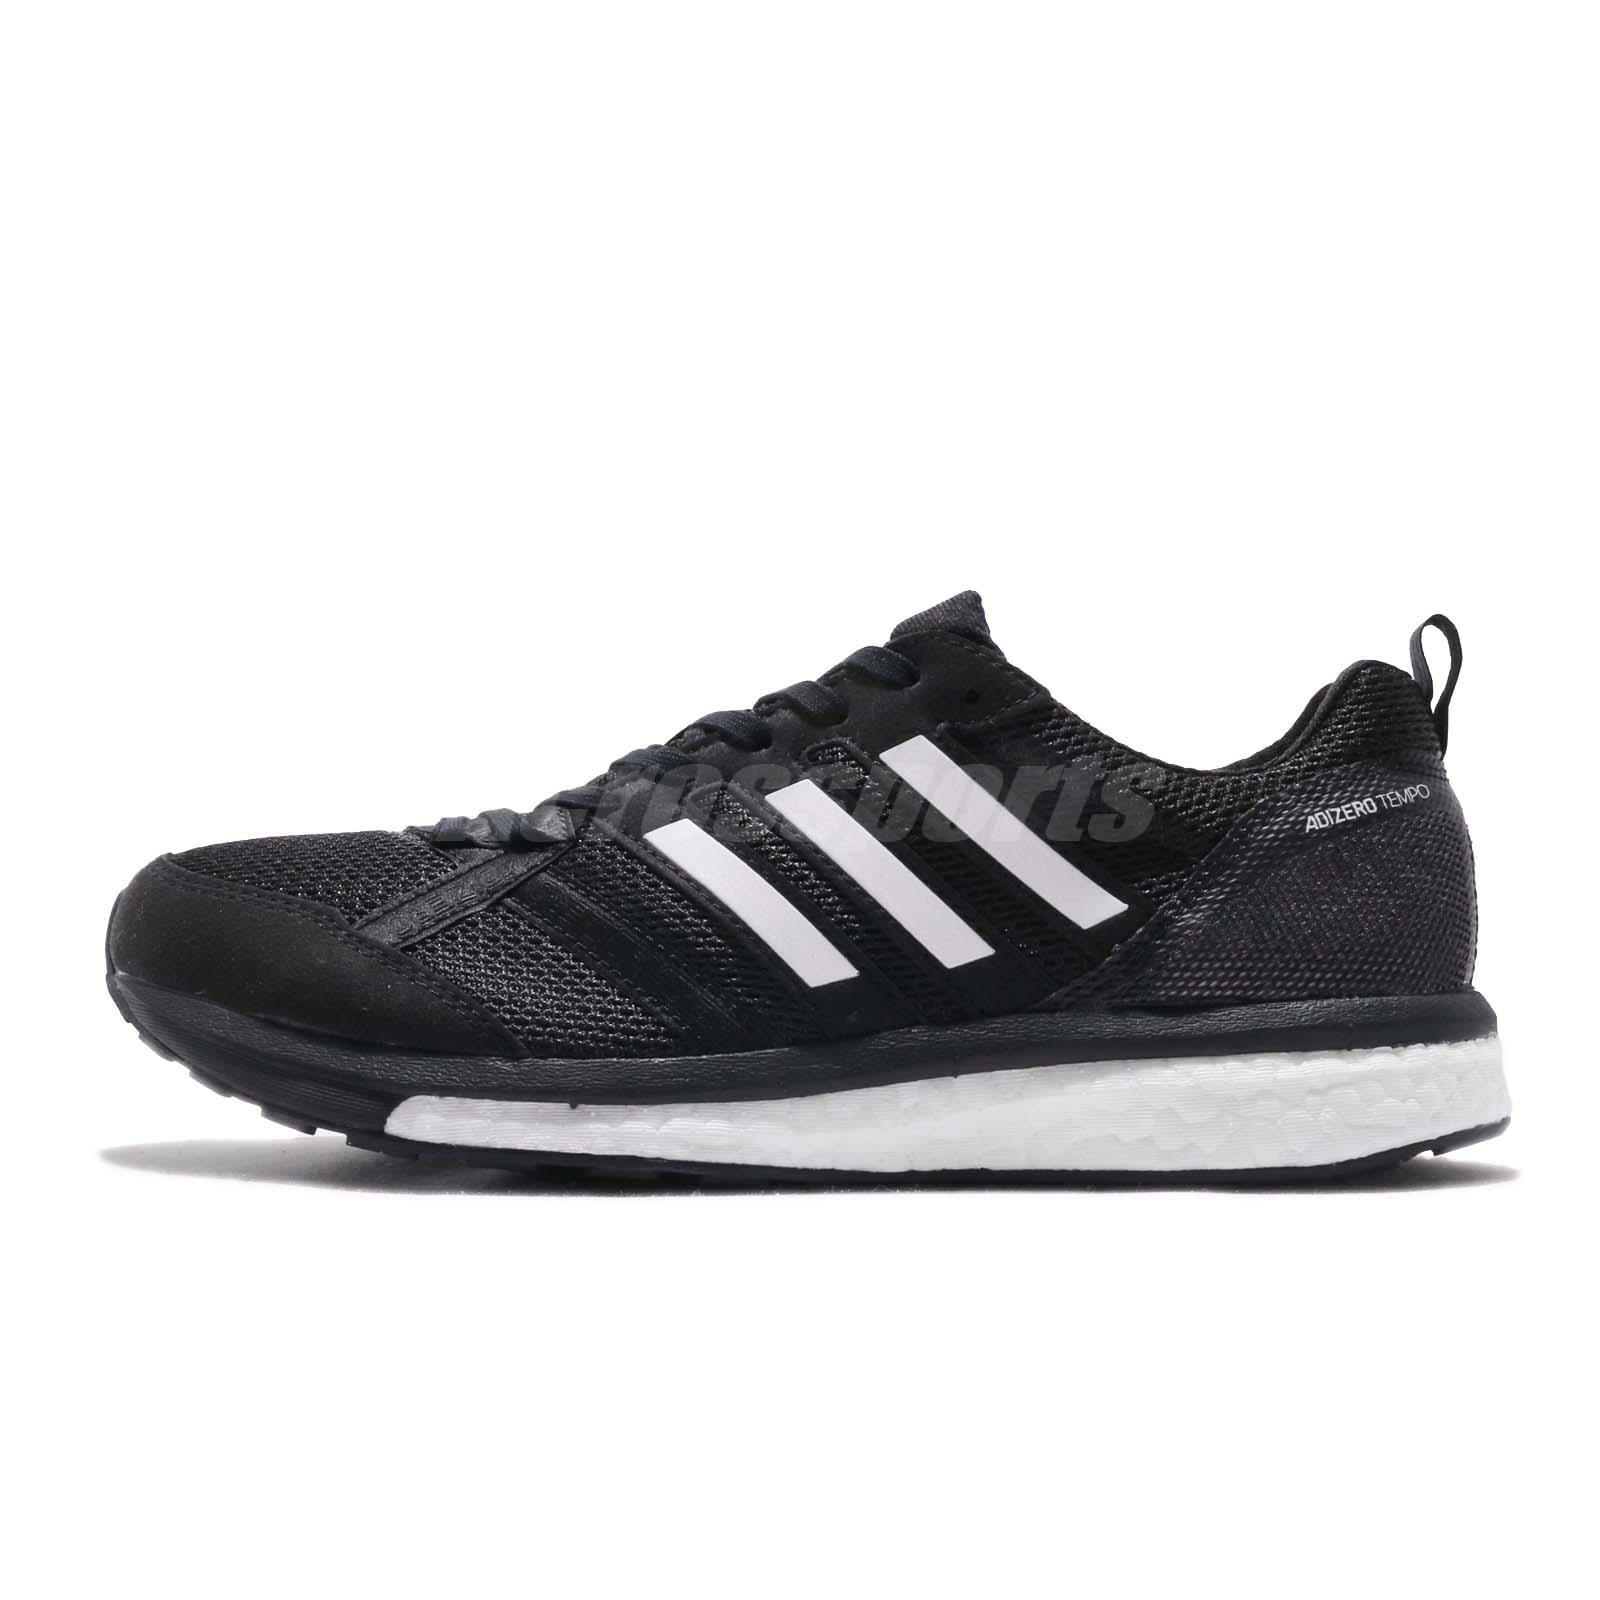 the best attitude b8fbc 496c6 Details about adidas Adizero Tempo 9 M Boost Black White Men Running Shoes  Sneakers B37423